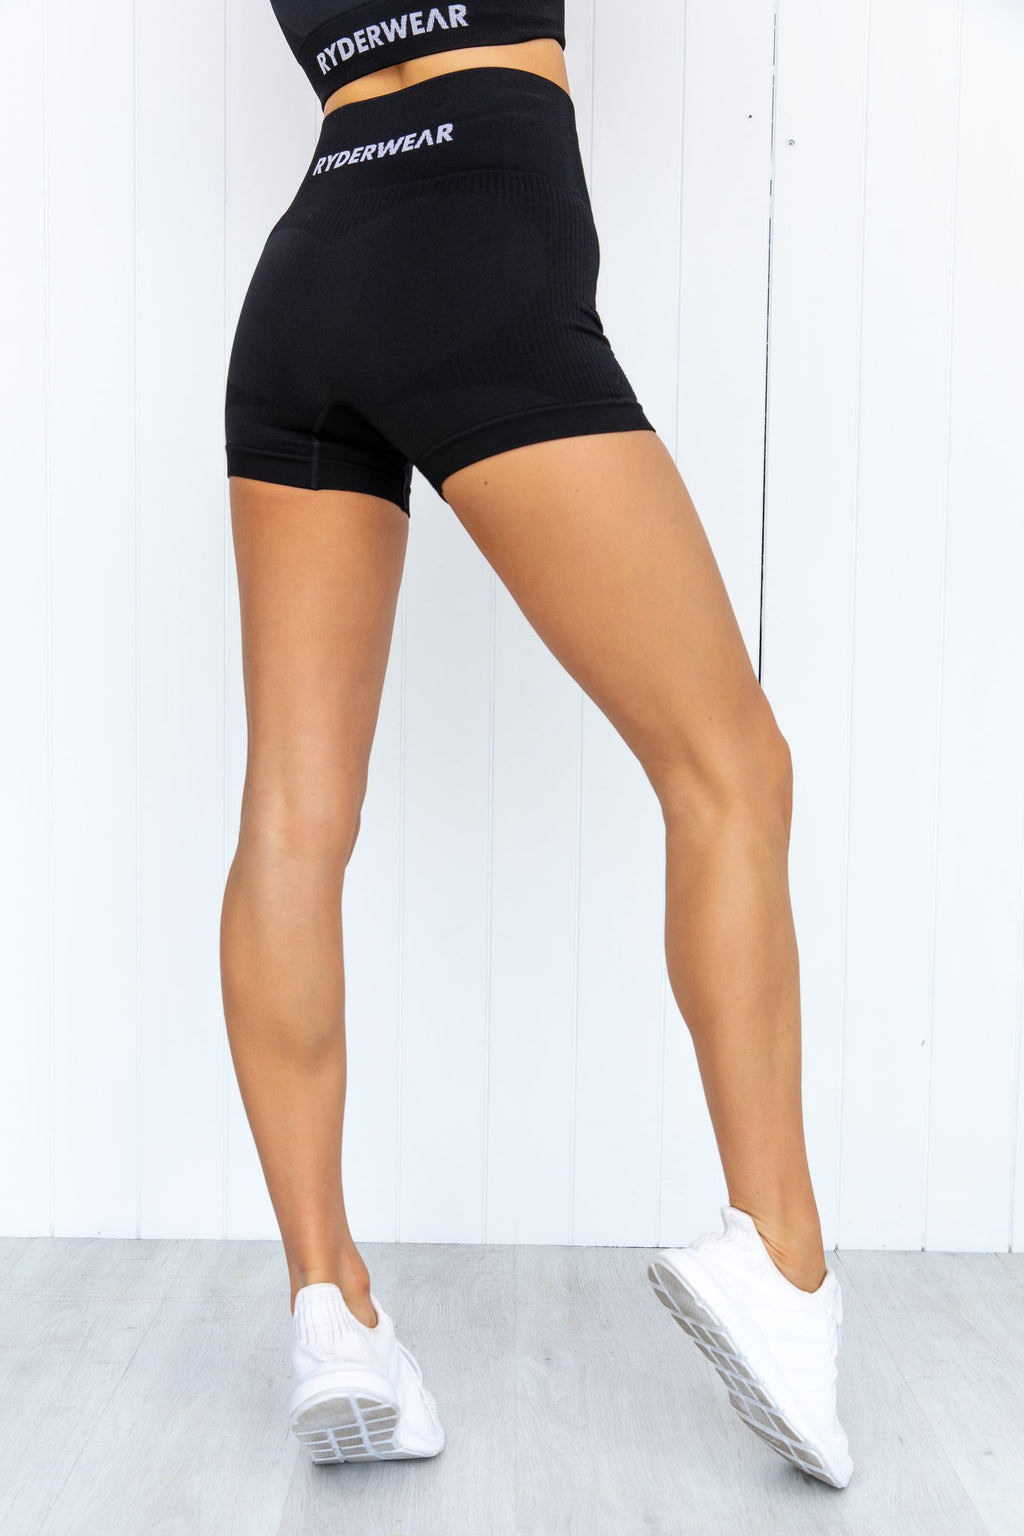 Electra Seamless Shorts - Black